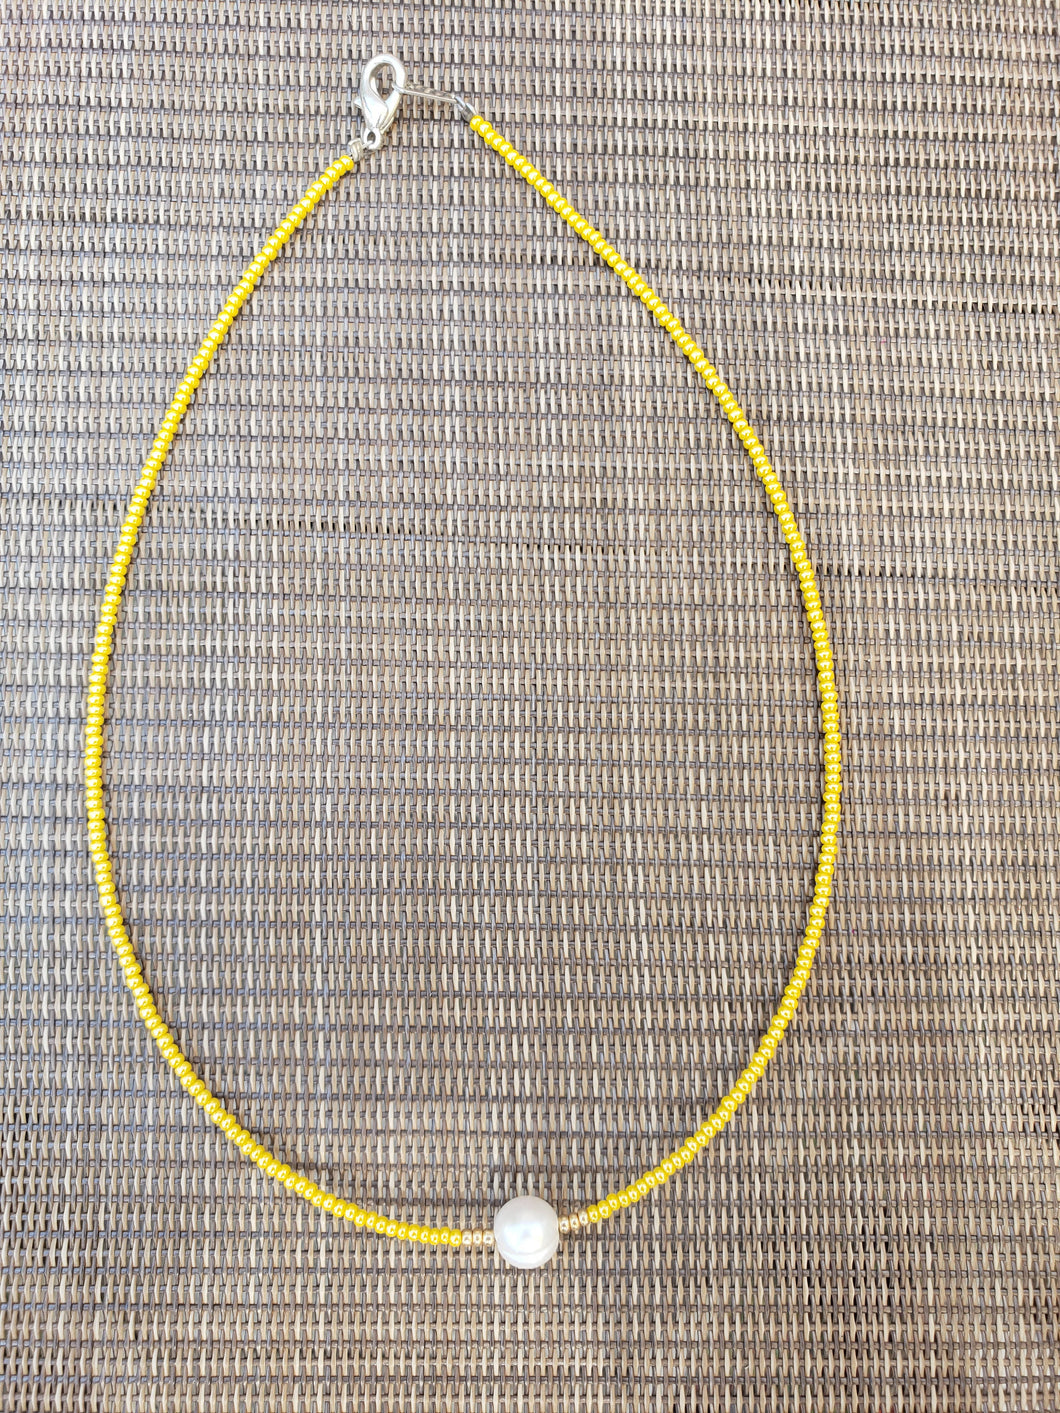 Yellow Choker-NS-15-0007